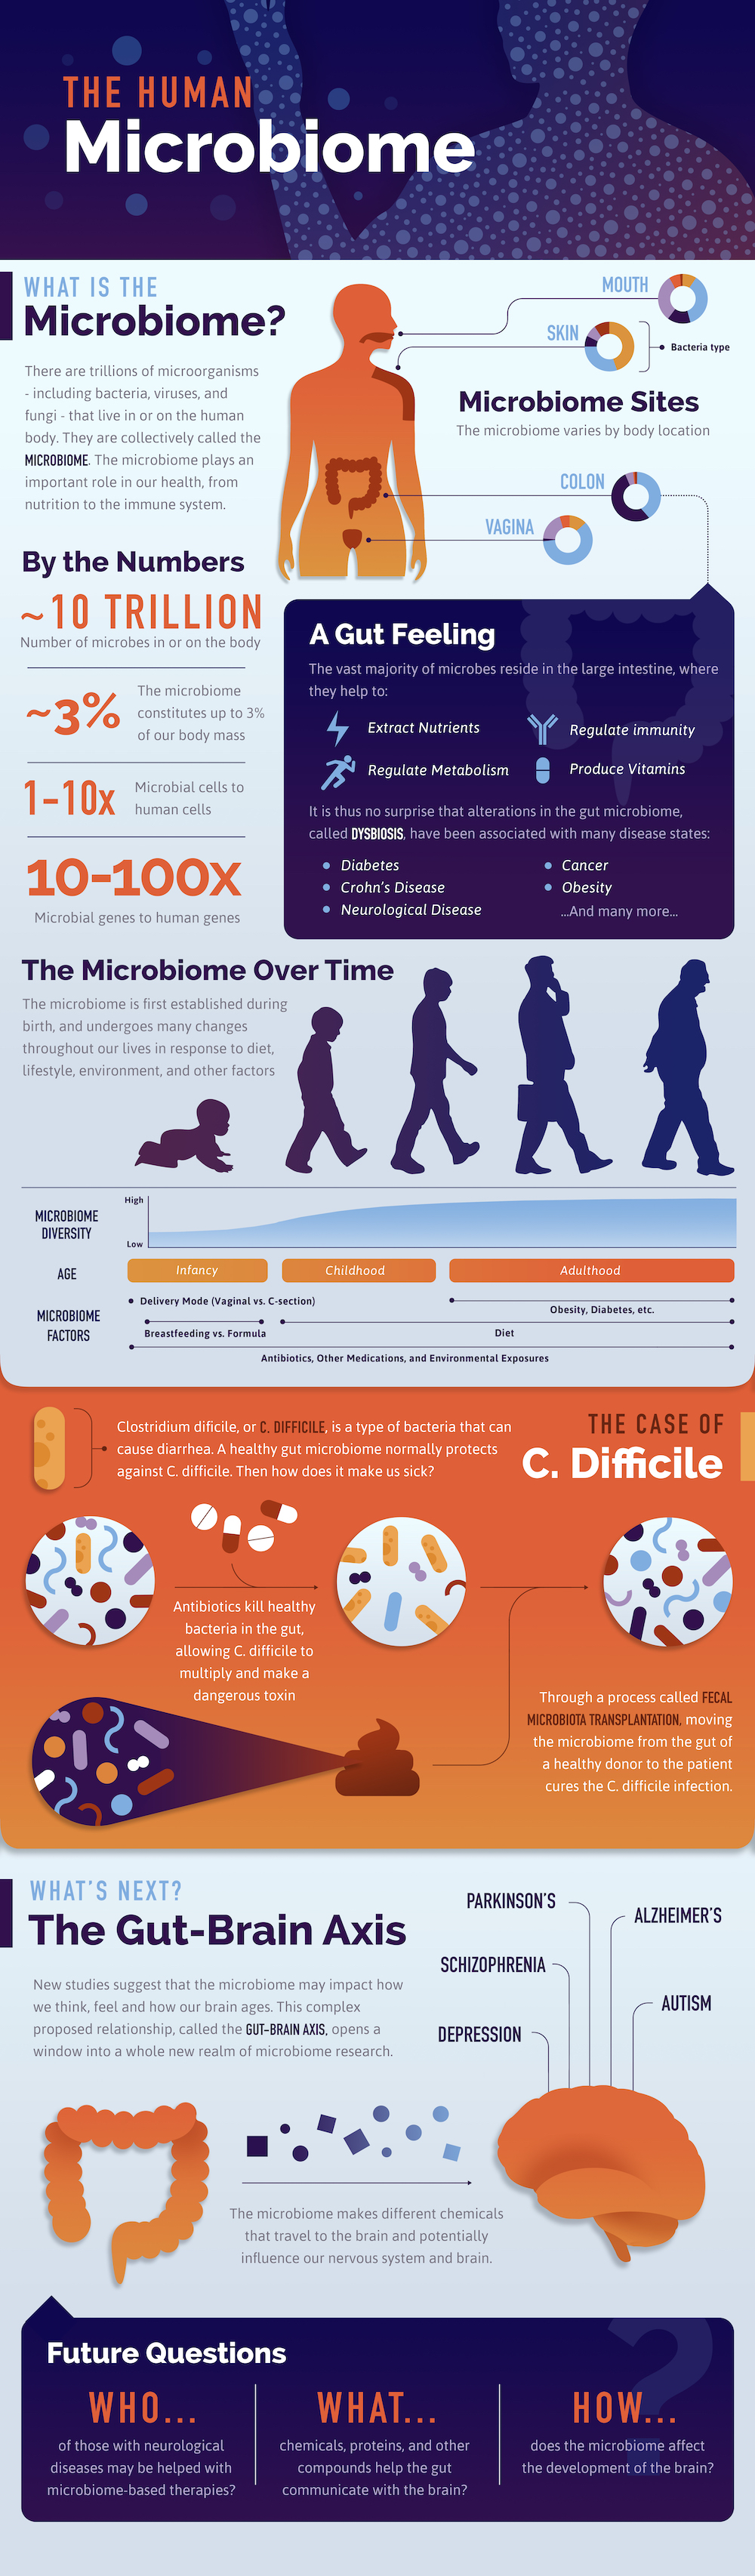 Microbiome_Infographic (5) (5).jpg